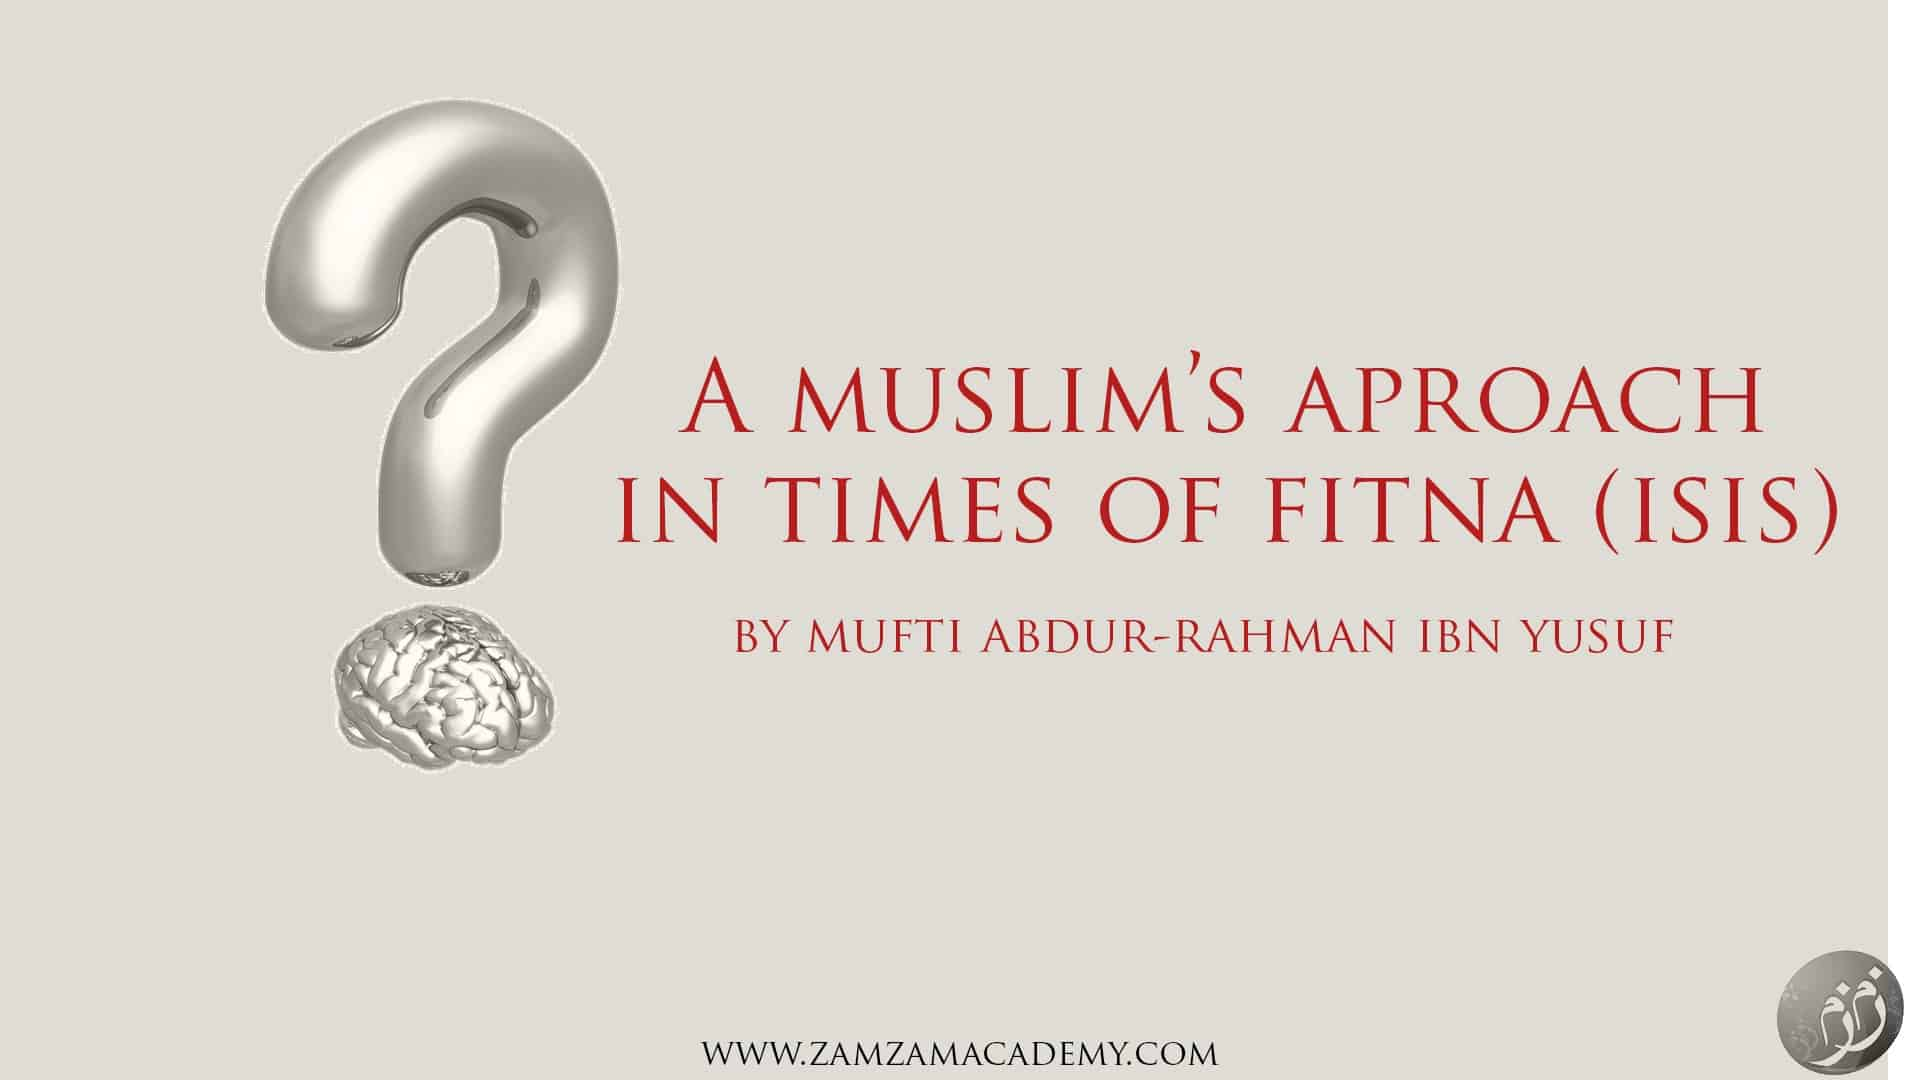 Abdur-Rahman ibn Yusuf – A Muslim's Approach in Times of Fitna (ISIS)